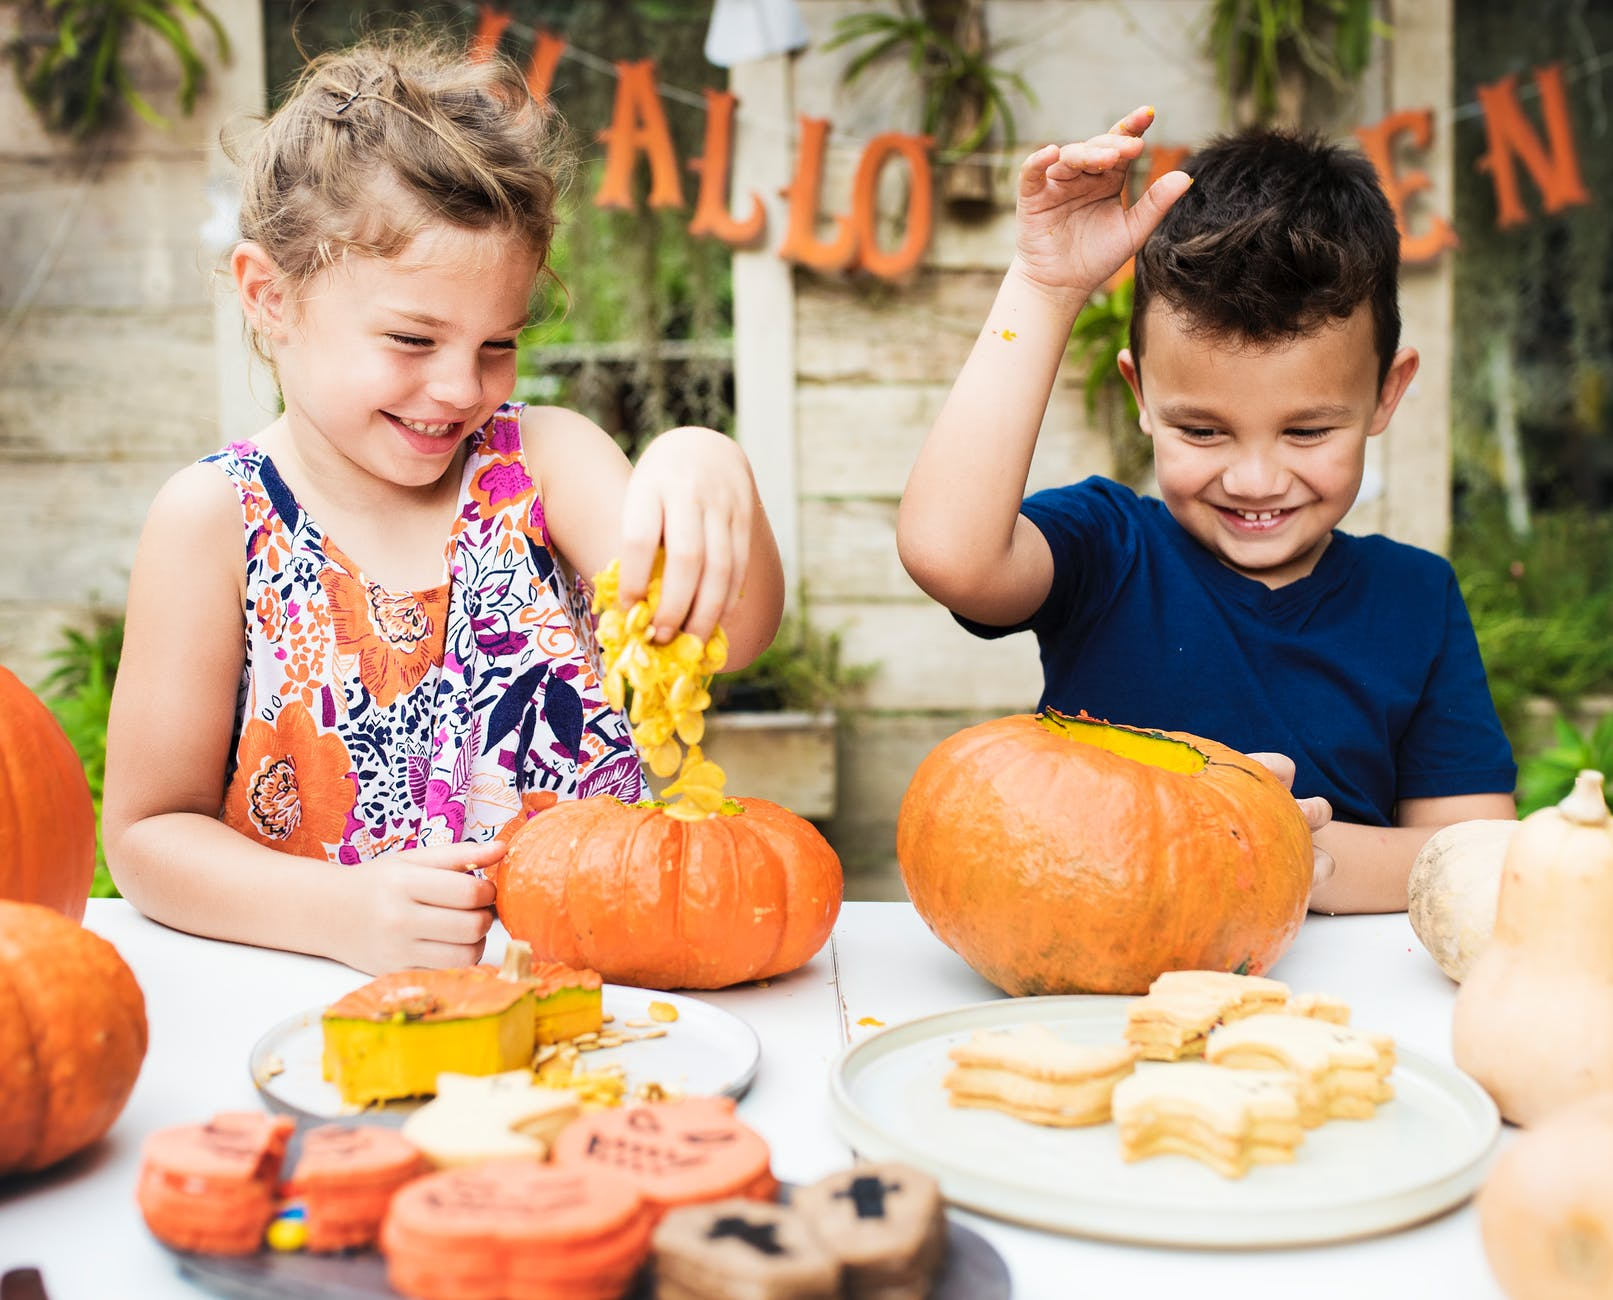 boy and girl playing with pumpkins